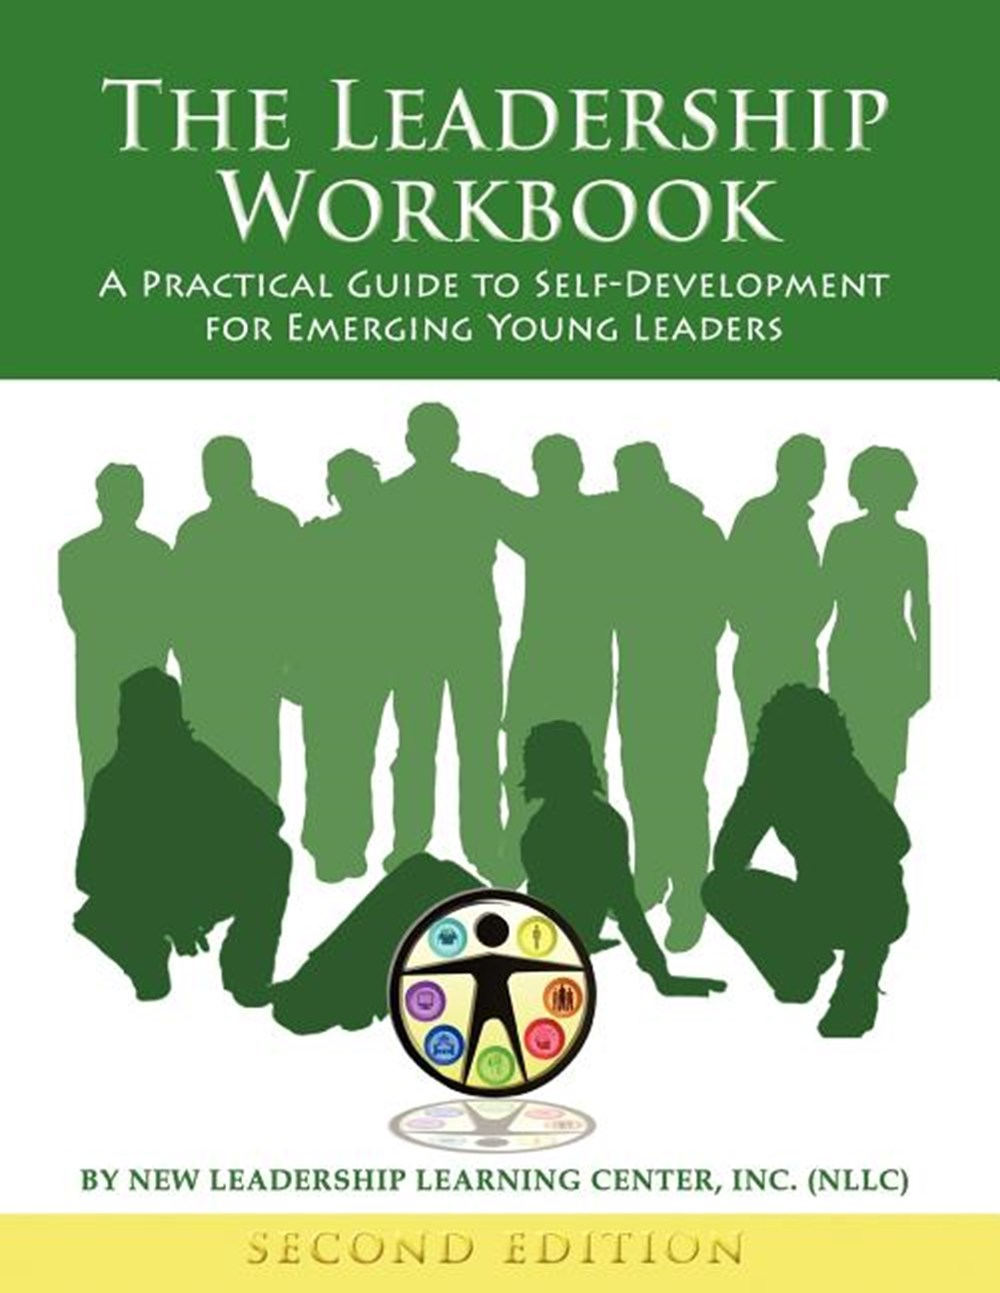 Leadership Workbook A Practical Guide to Self-Development for Emerging Young Leaders